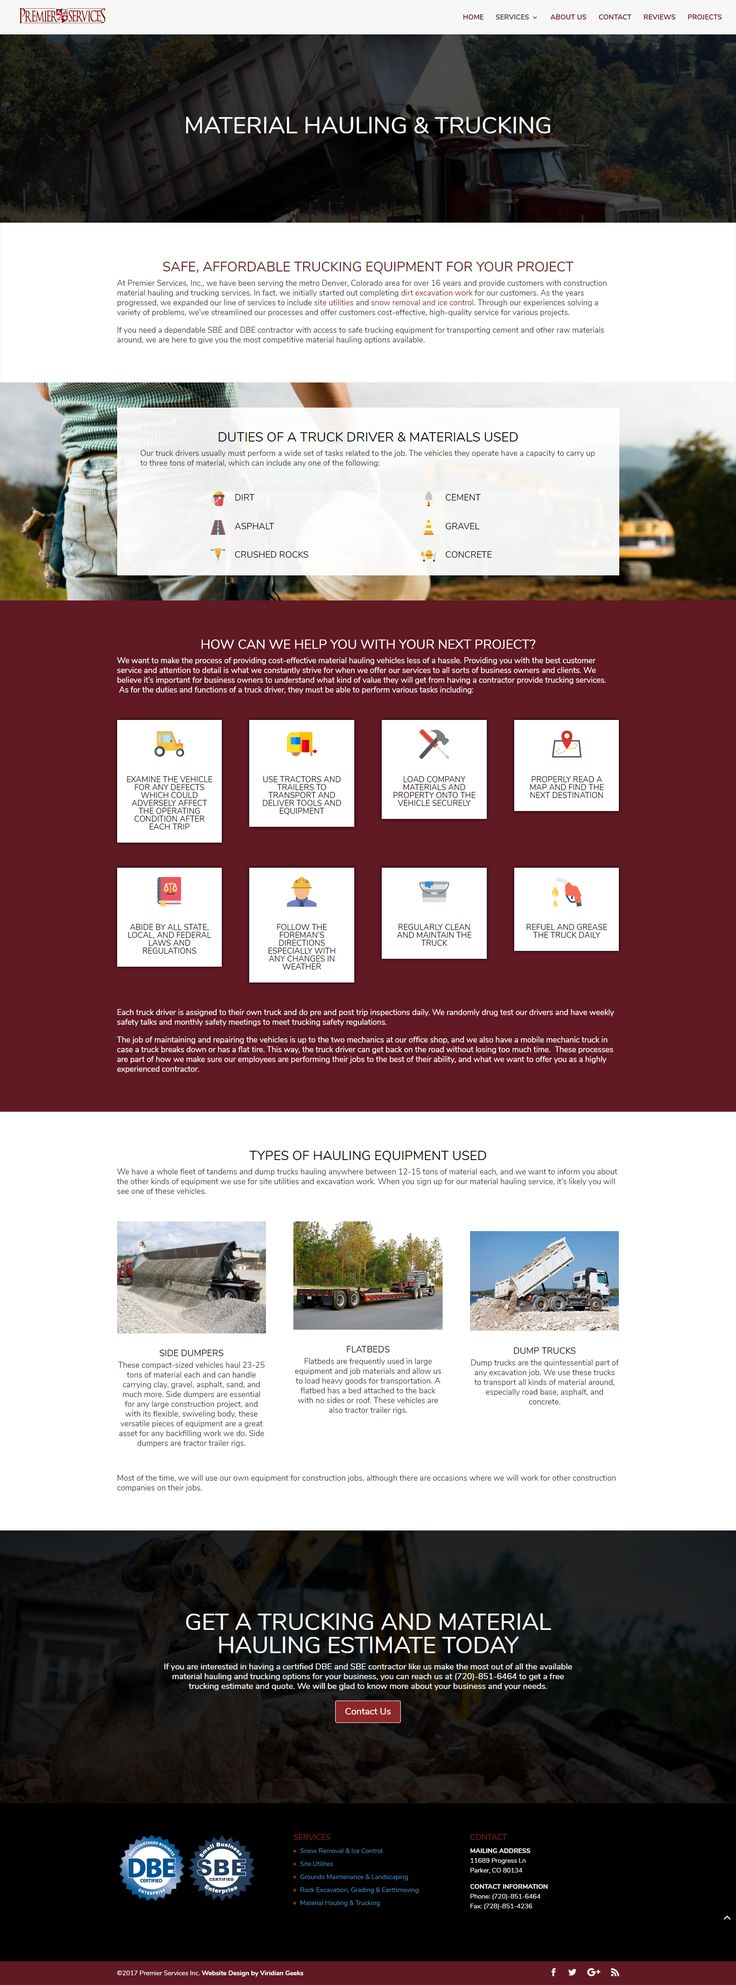 Our web design and content for Premier Services, Inc's material hauling & trucking page.